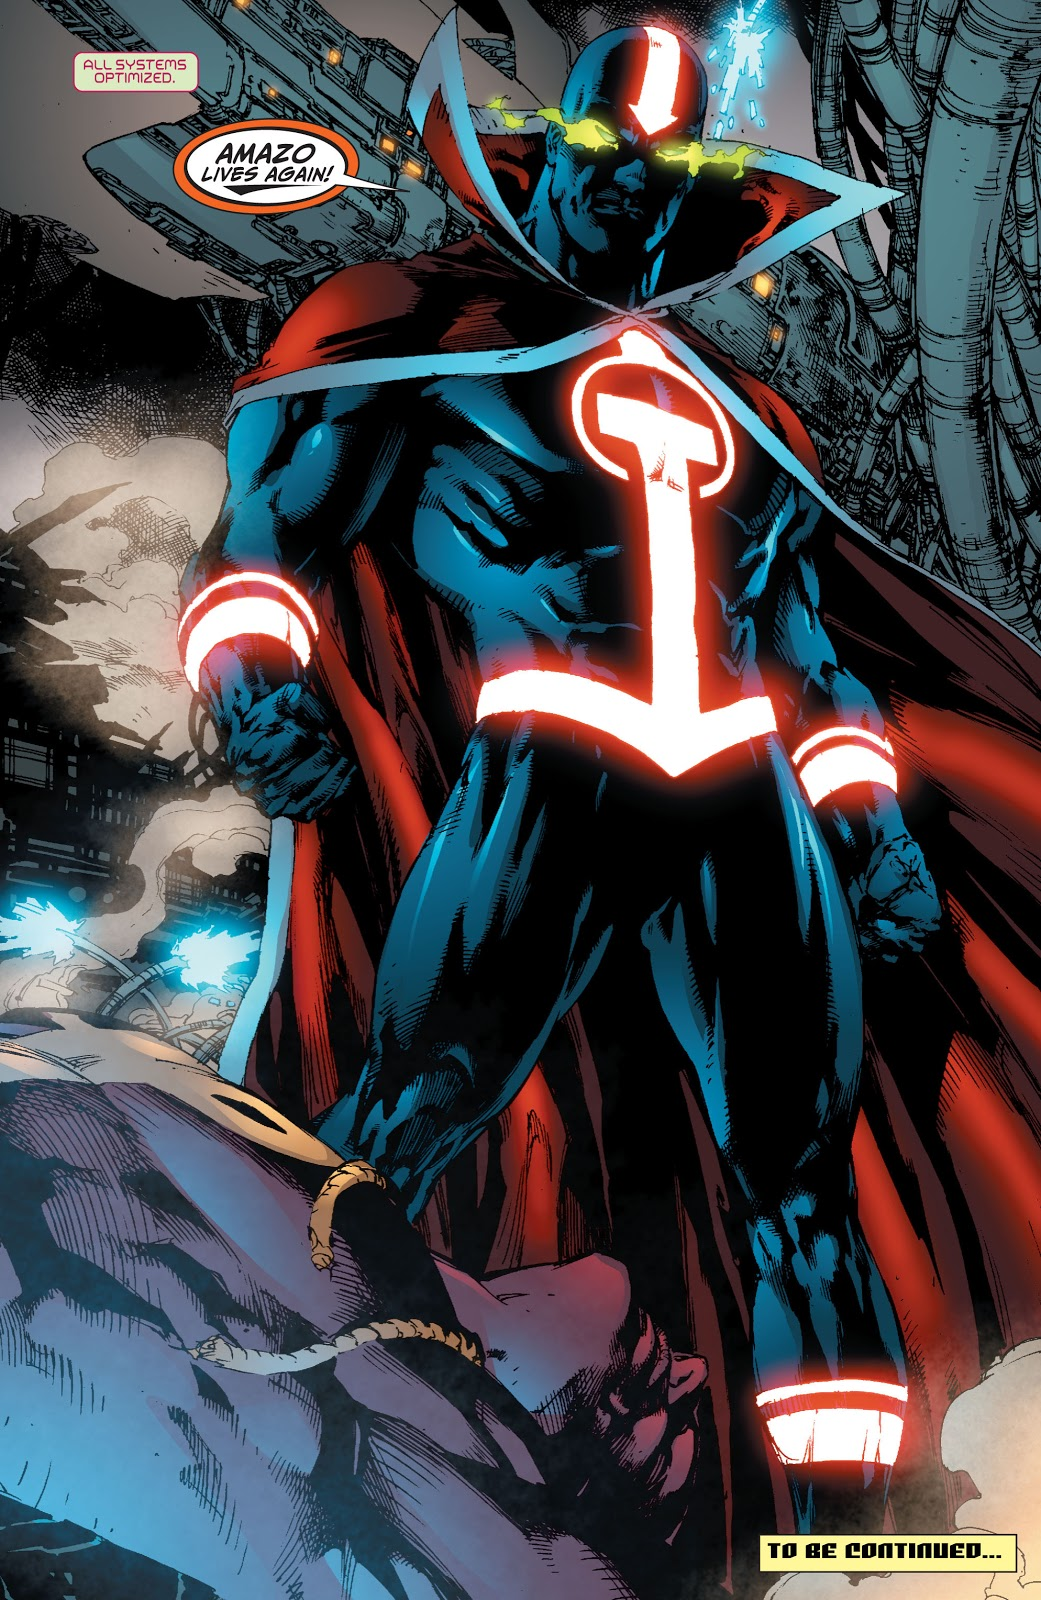 From - Justice League of America Vol. 2 #22